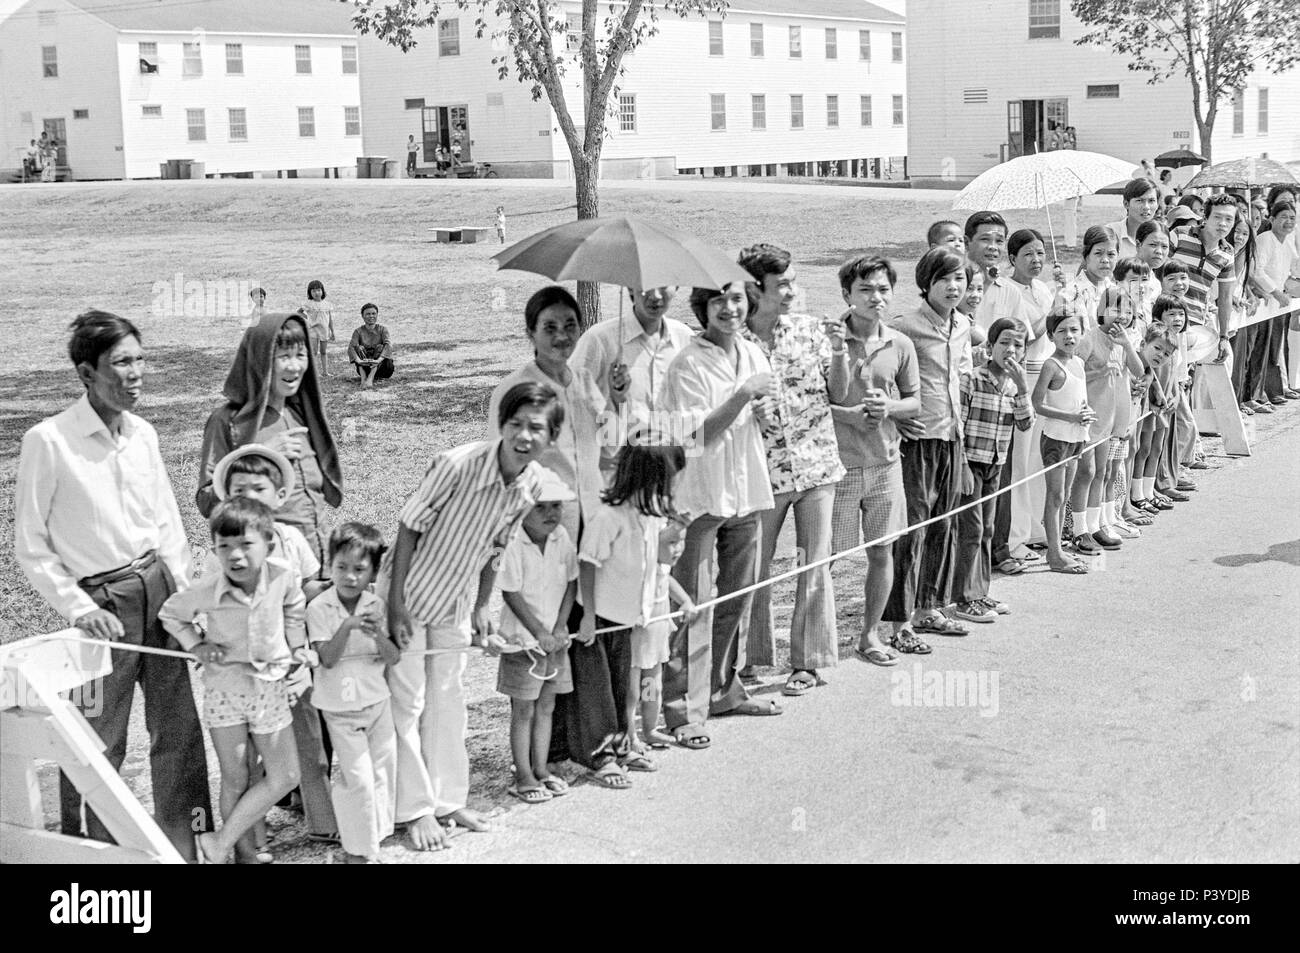 FORT SMITH, AR, USA - AUGUST 10, 1975 -- A line of newly-arrived Vietnamese refugees stand and wait for the passing of President Gerald Ford.  The president is to be touring the Fort Chaffee Vietnamese refugee center and welcoming the evacuated South Vietnamese to the United States.  Behind the people stands a row of the barracks buildings that housed the refugees.  Focus is on the center of the line of people. - Stock Image